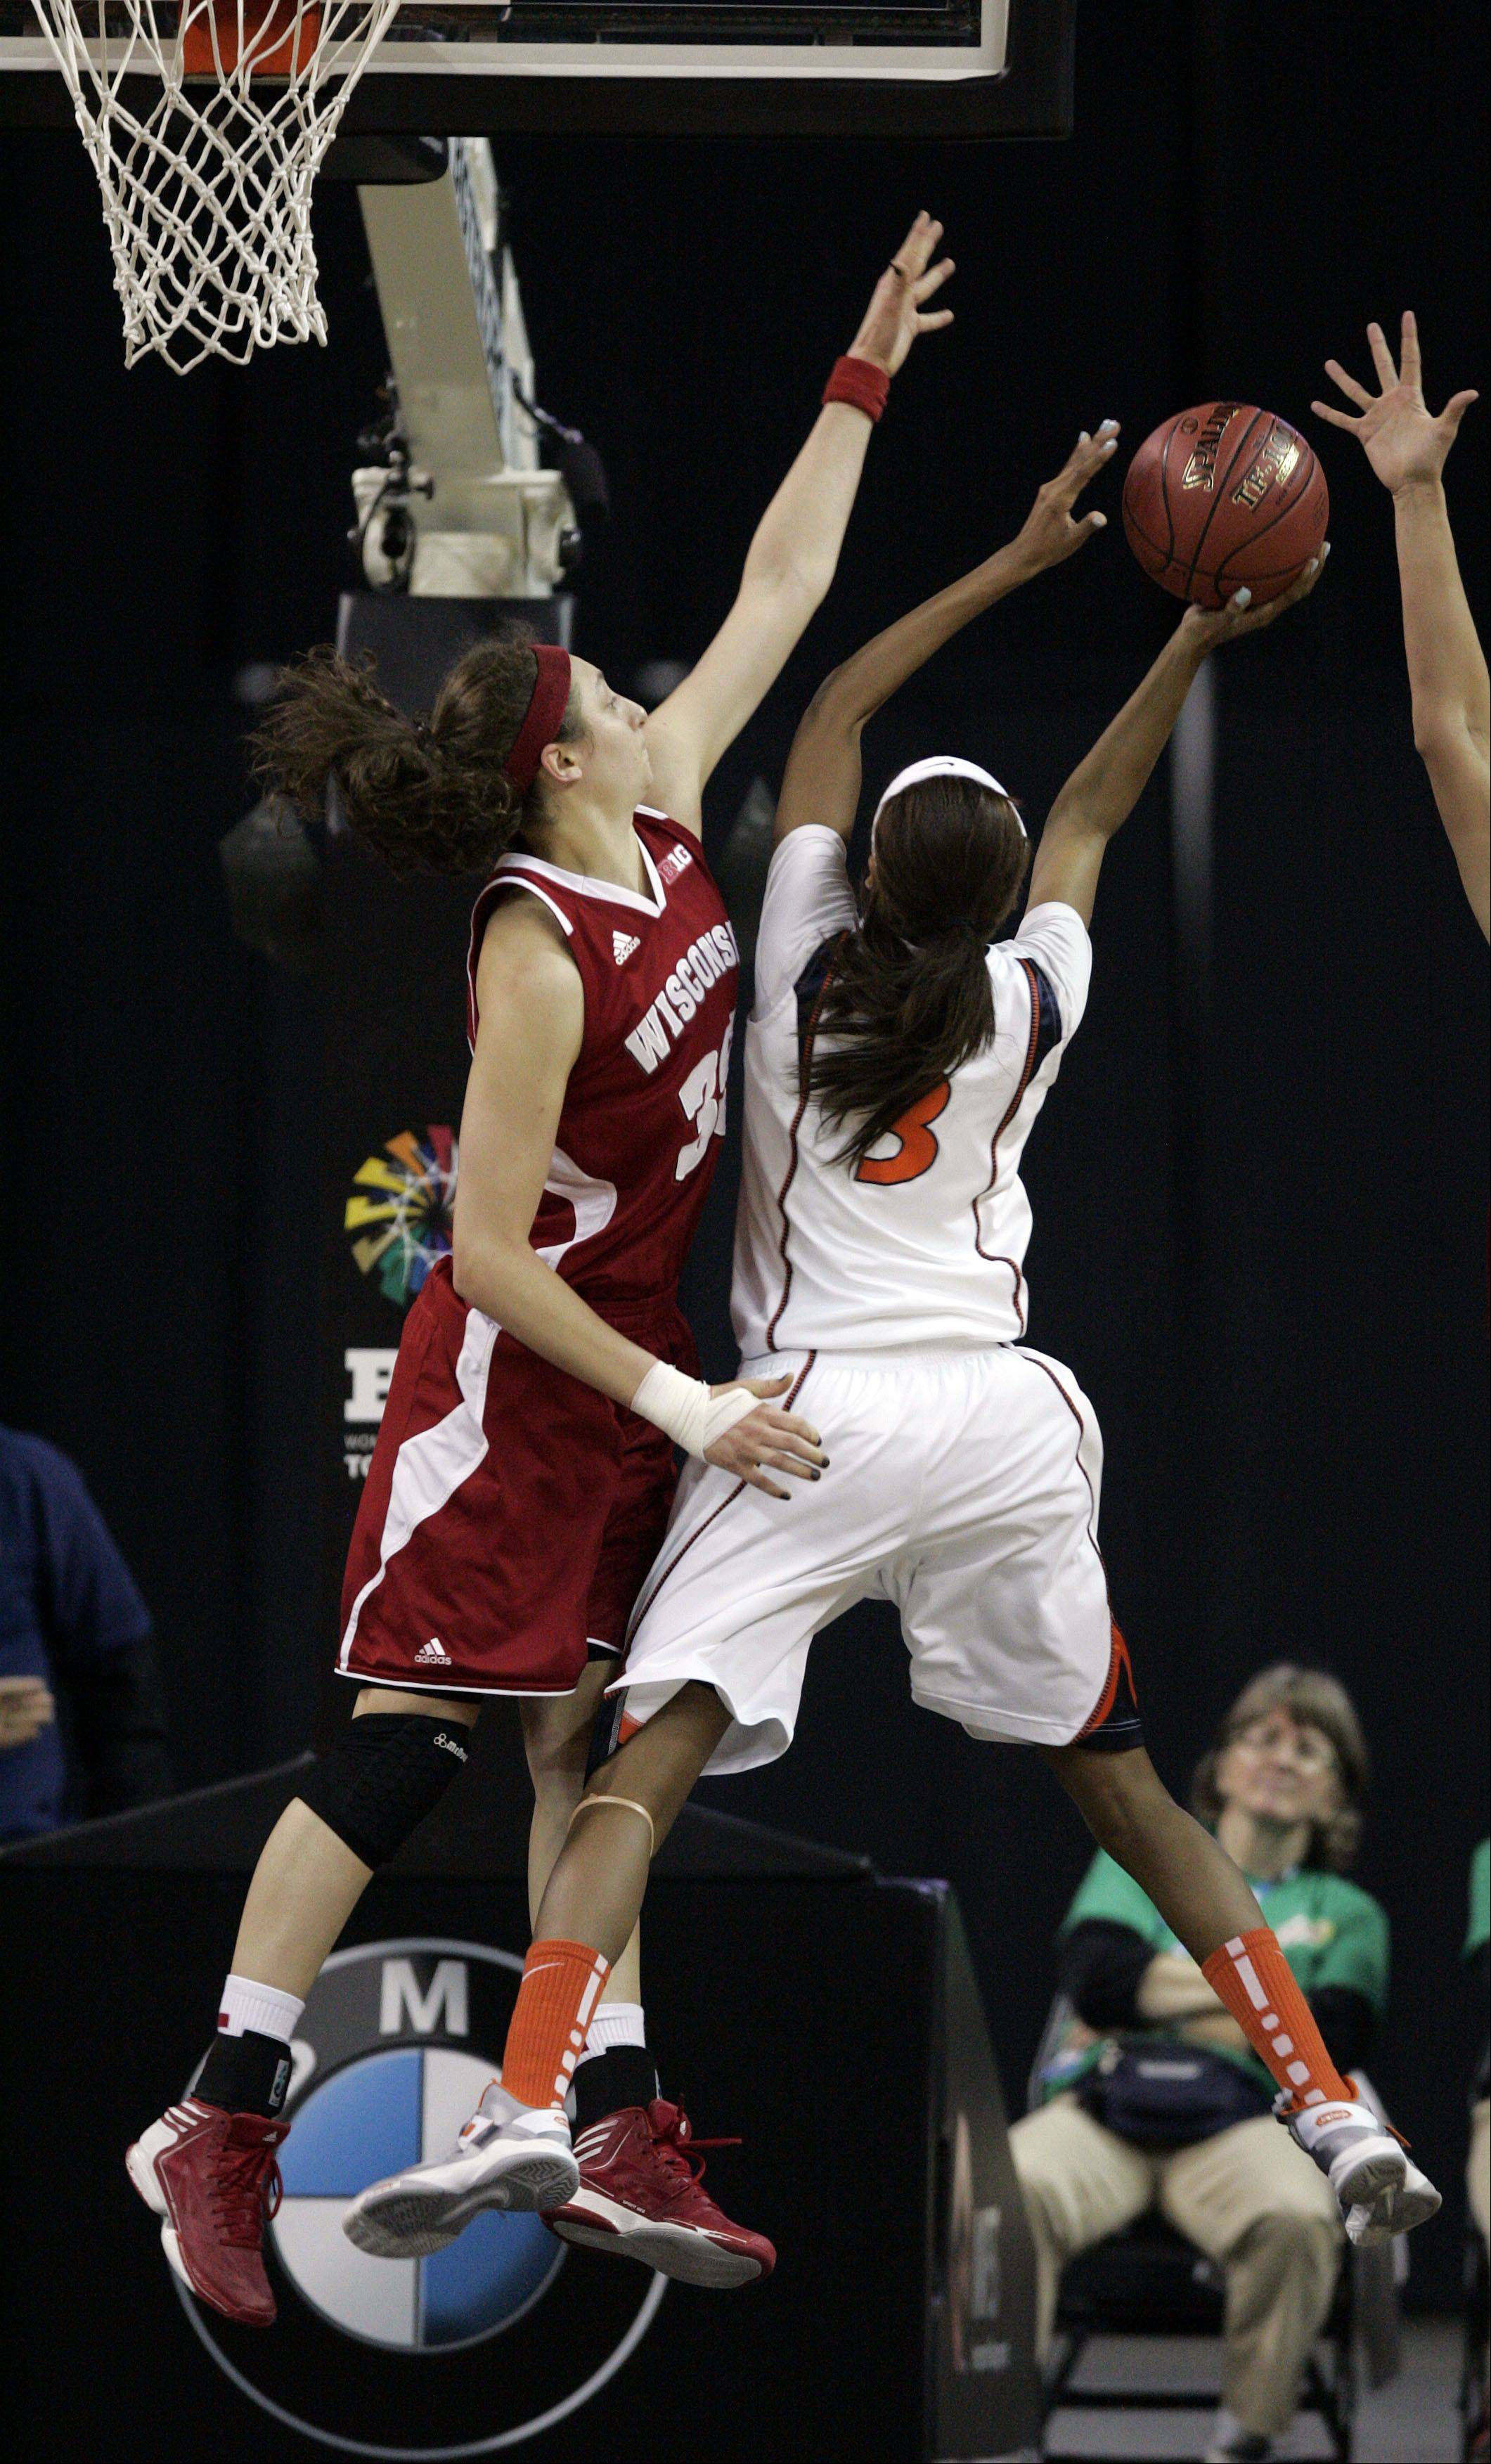 Wisconsin sophomore Jacki Gulczynski (35) of Bartlett pressures Illinois' Taylor Tuck Thursday at the Sears Centre in Hoffman Estates.